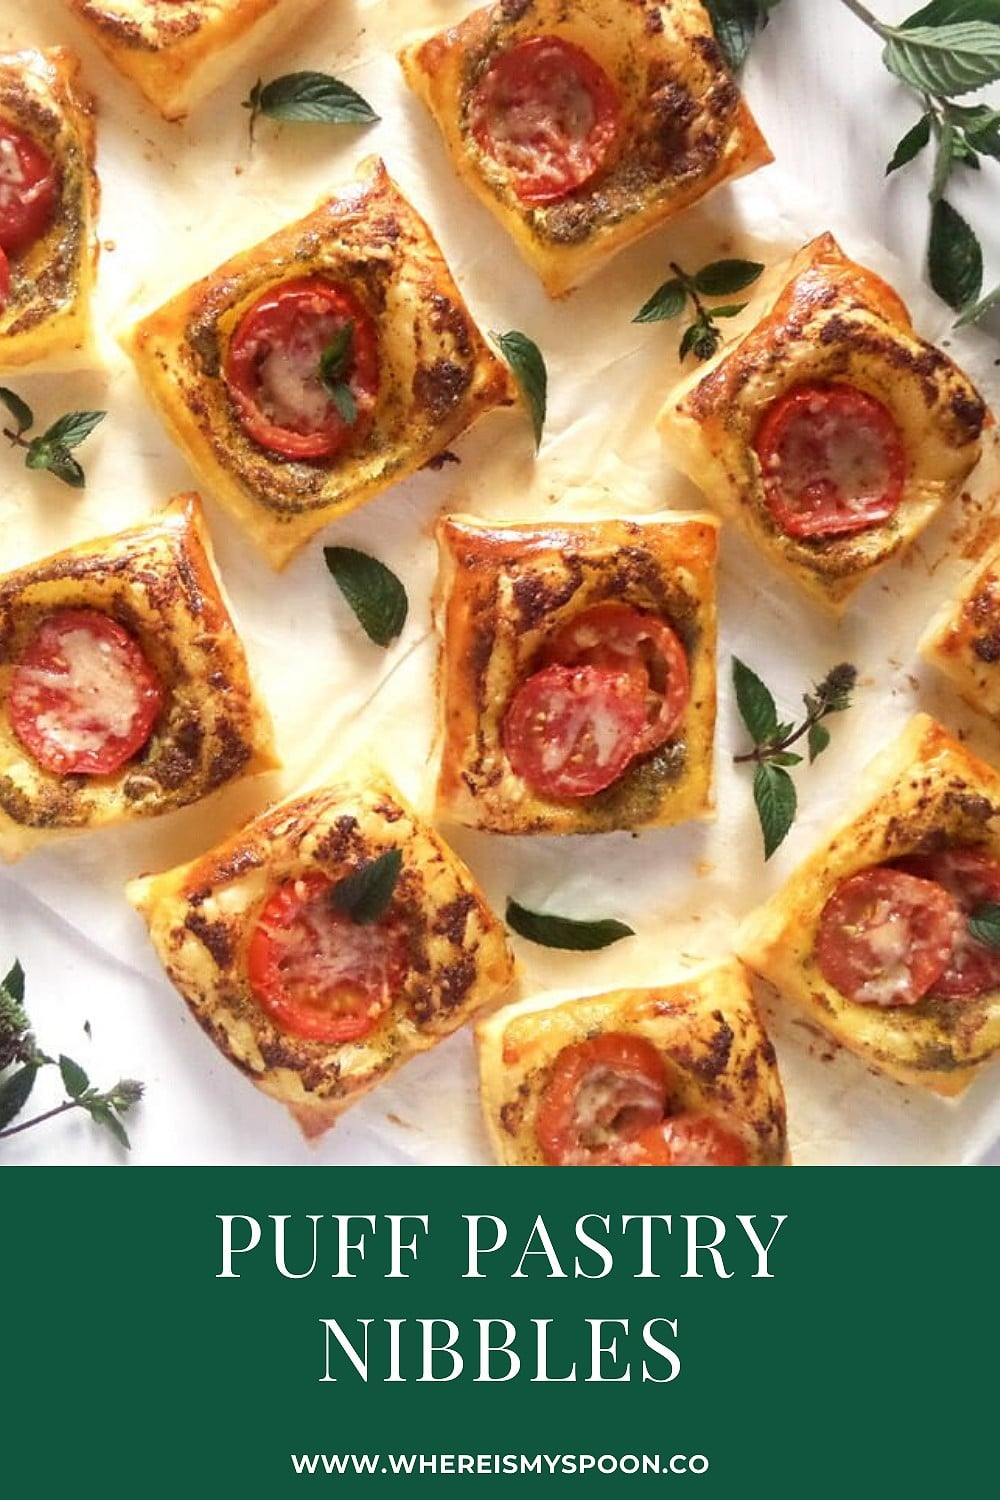 puff pastry nibbles, Puff Pastry Nibbles (with Pesto)